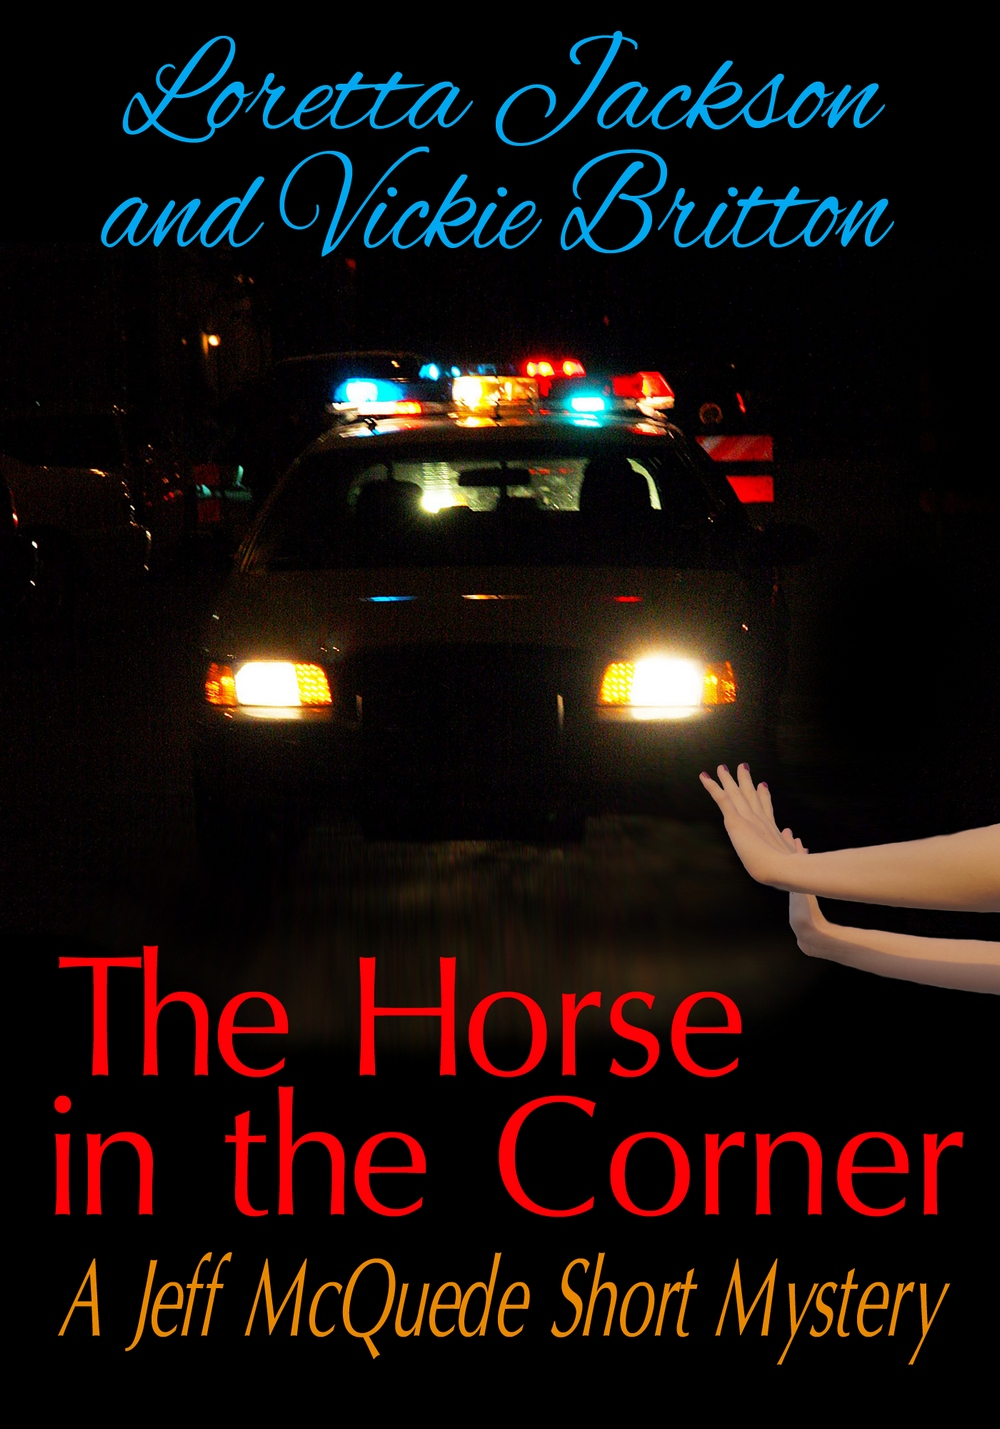 99c! READ  A JEFF MCQUEDE  SHORT STORY --THE HORSE IN THE CORNER